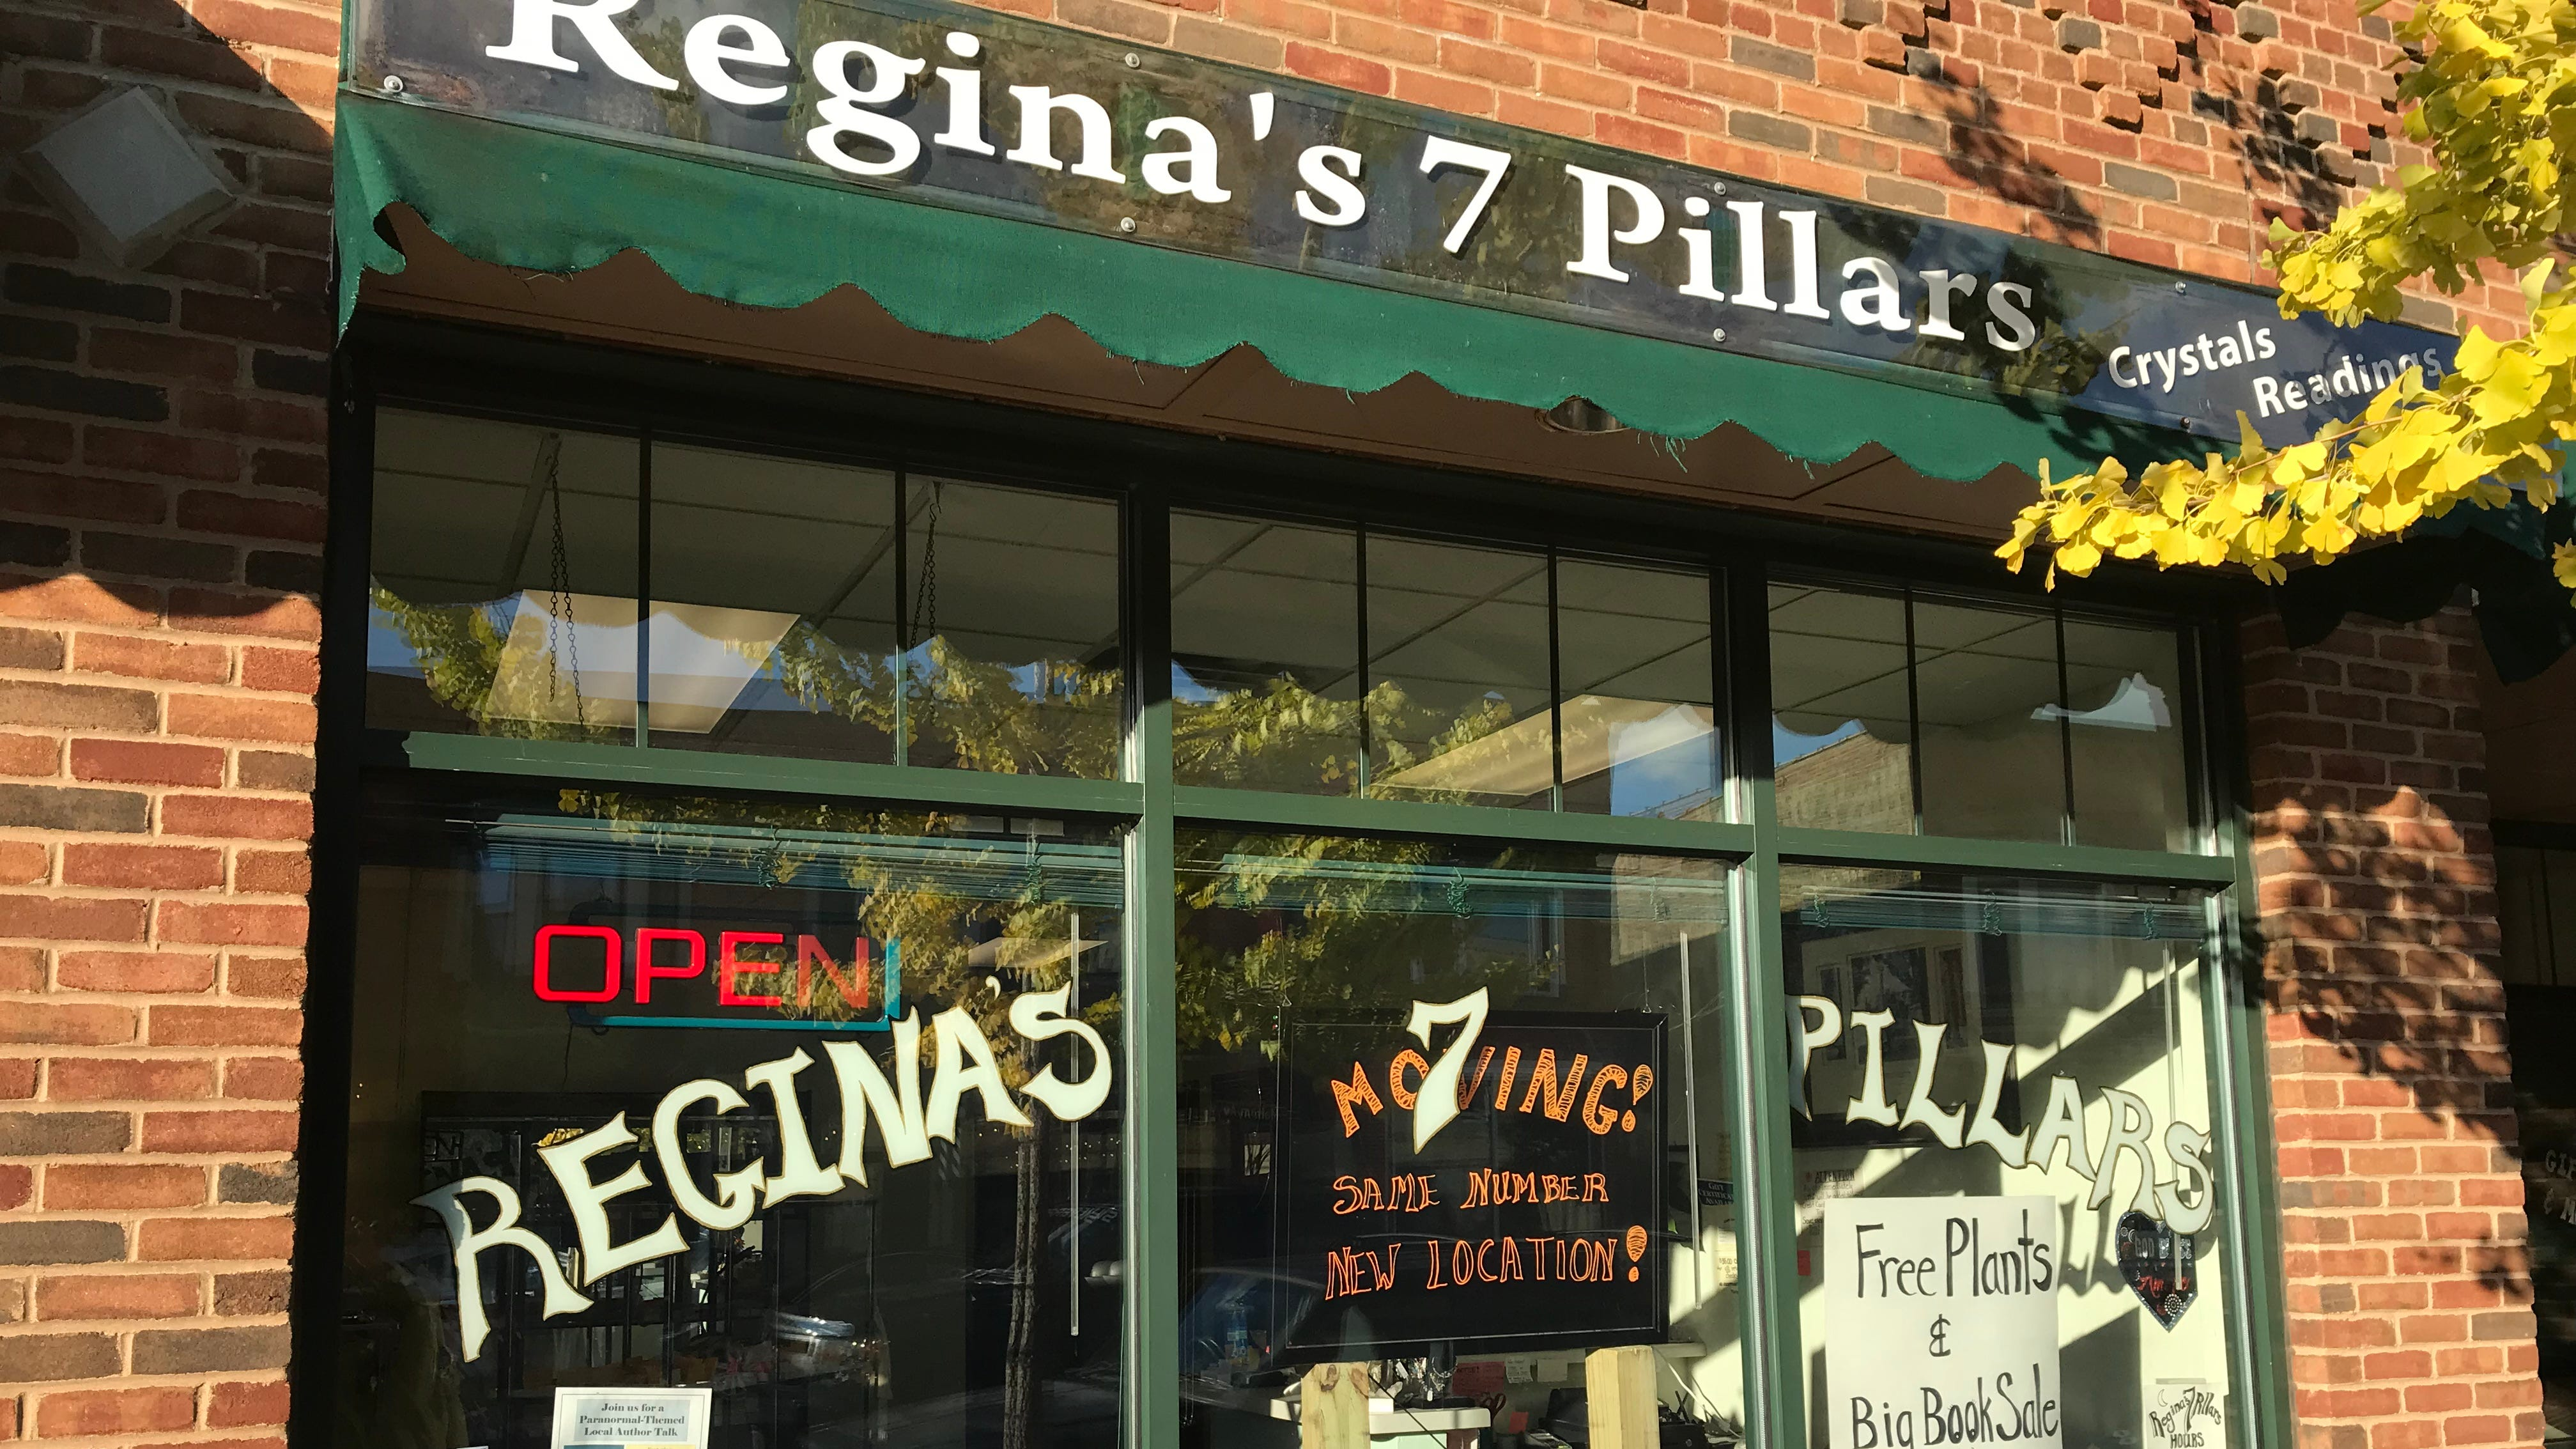 Regina's 7 Pillars moving from De Pere to Allouez| Streetwise